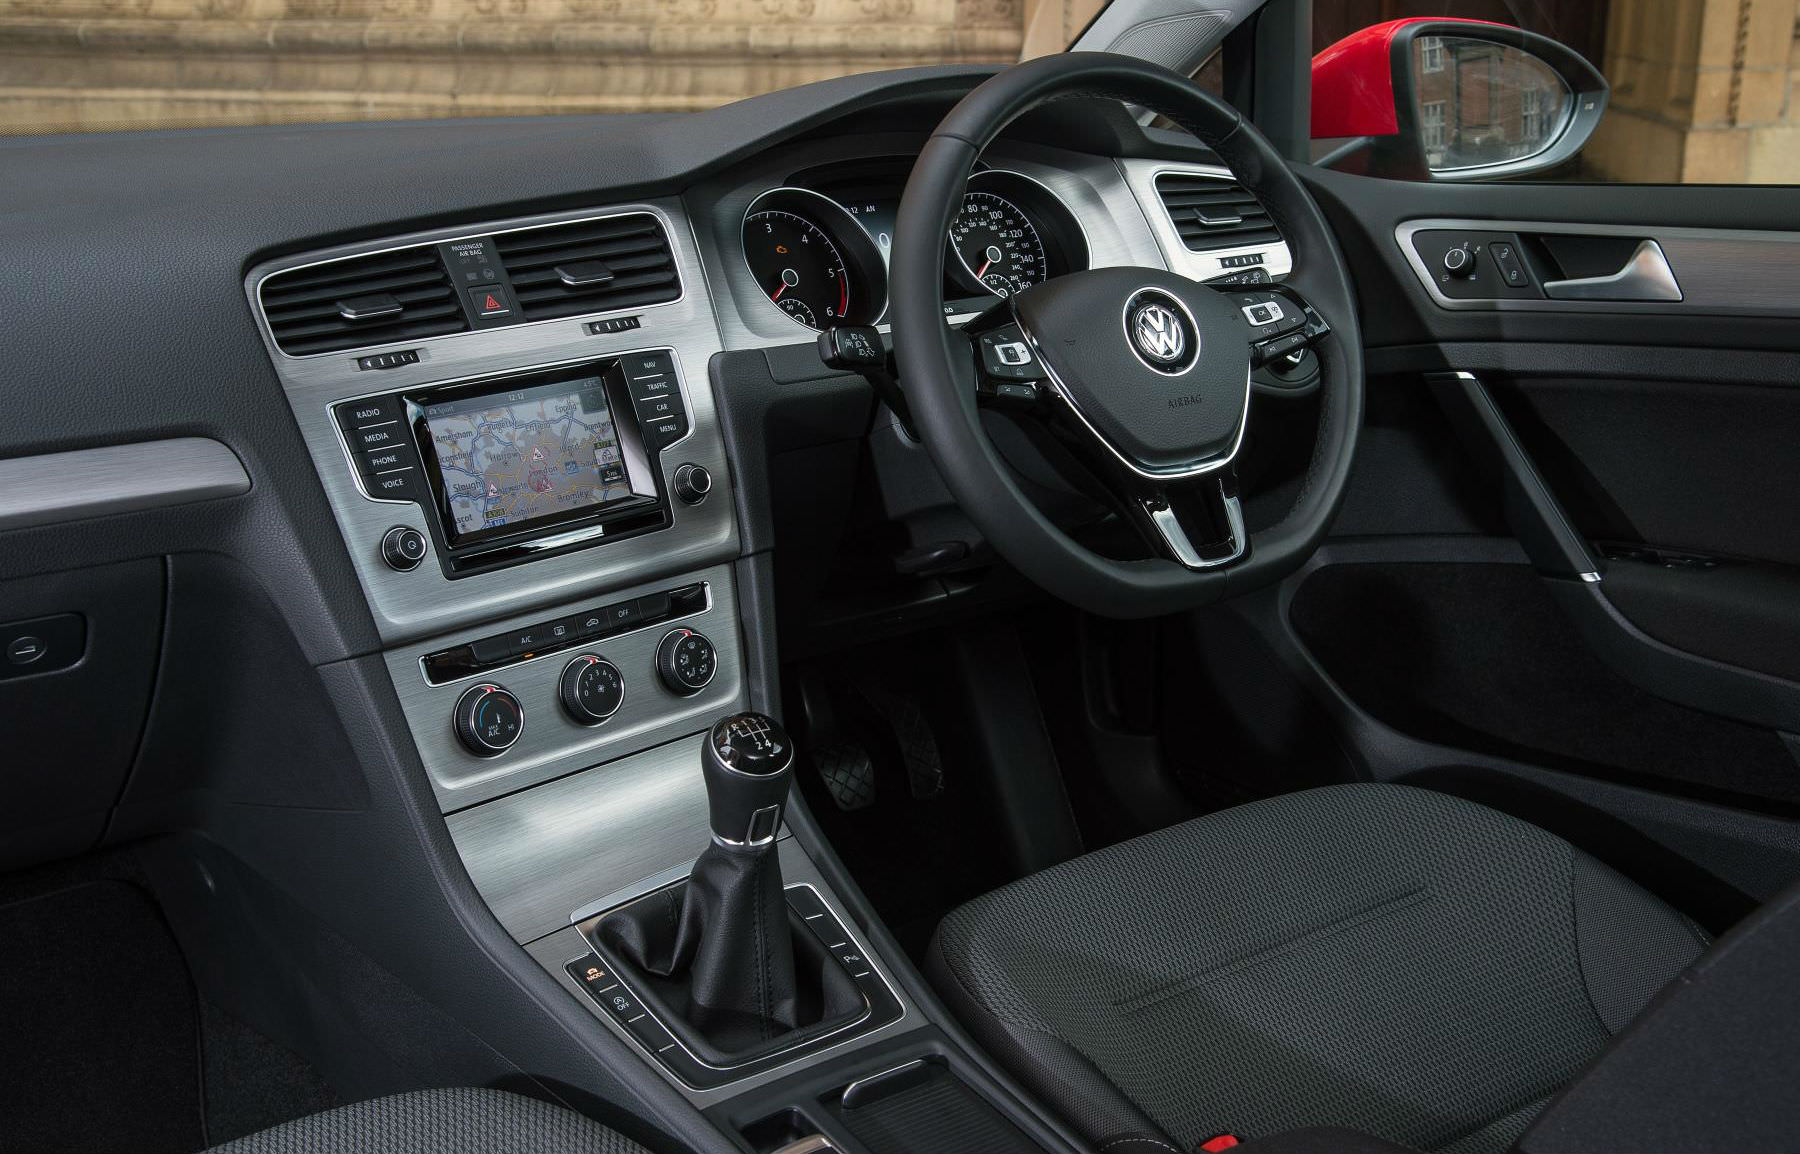 The dashboard of the VW Golf mk7